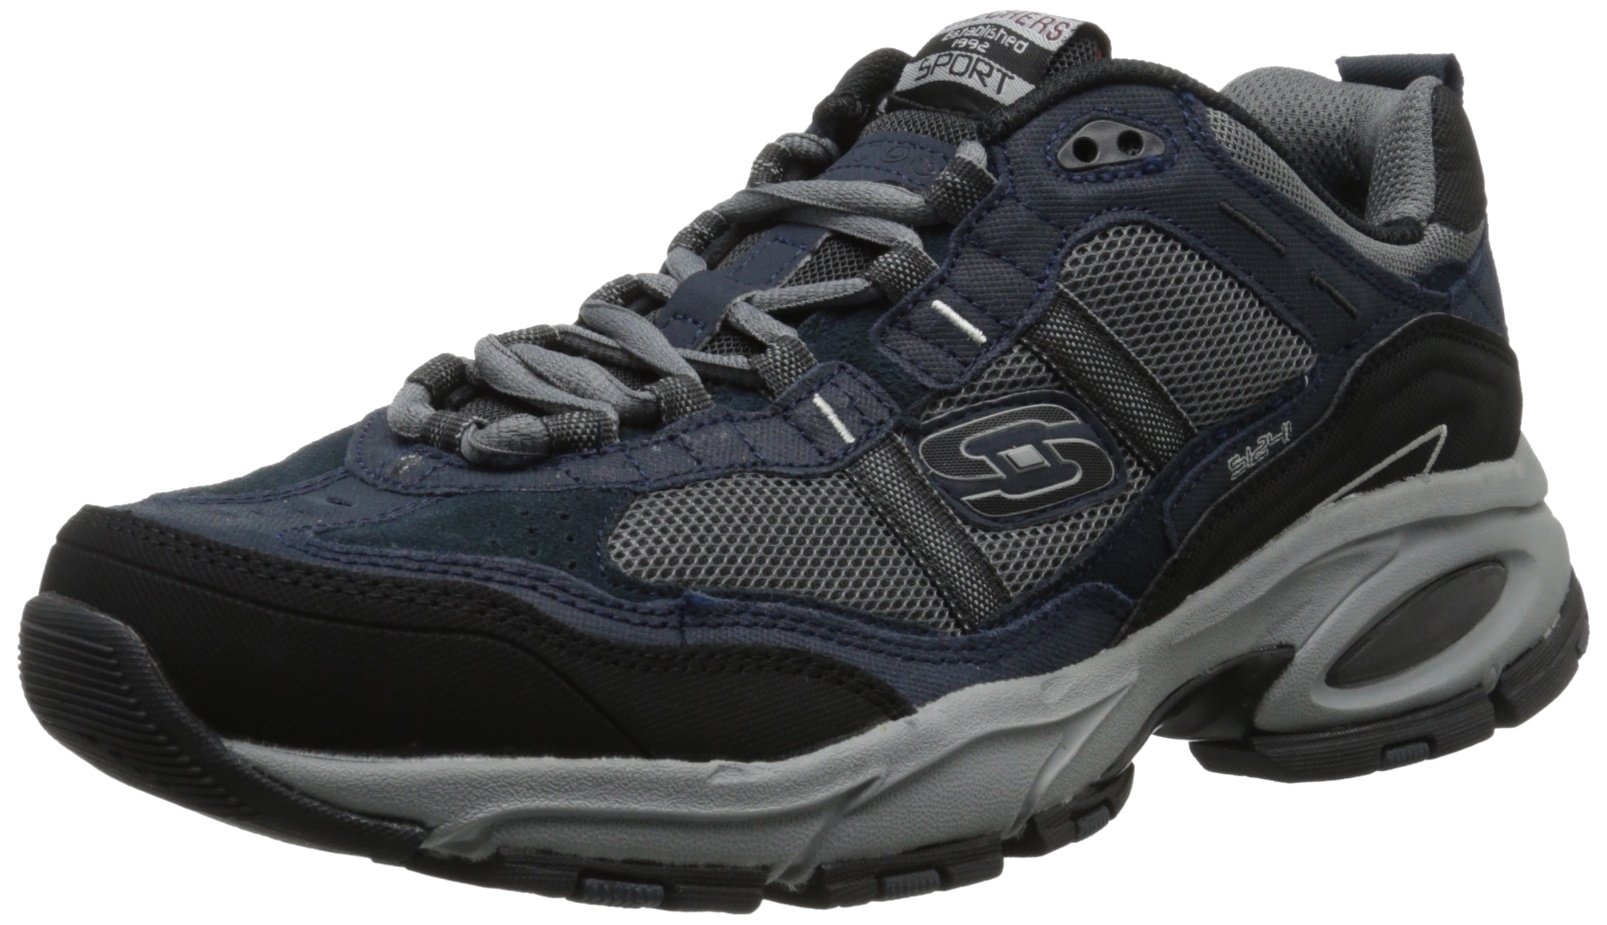 Skechers Sport Men's Vigor 2.0 Trait Memory Foam Sneaker, Navy/Grey, 10 M US by Skechers